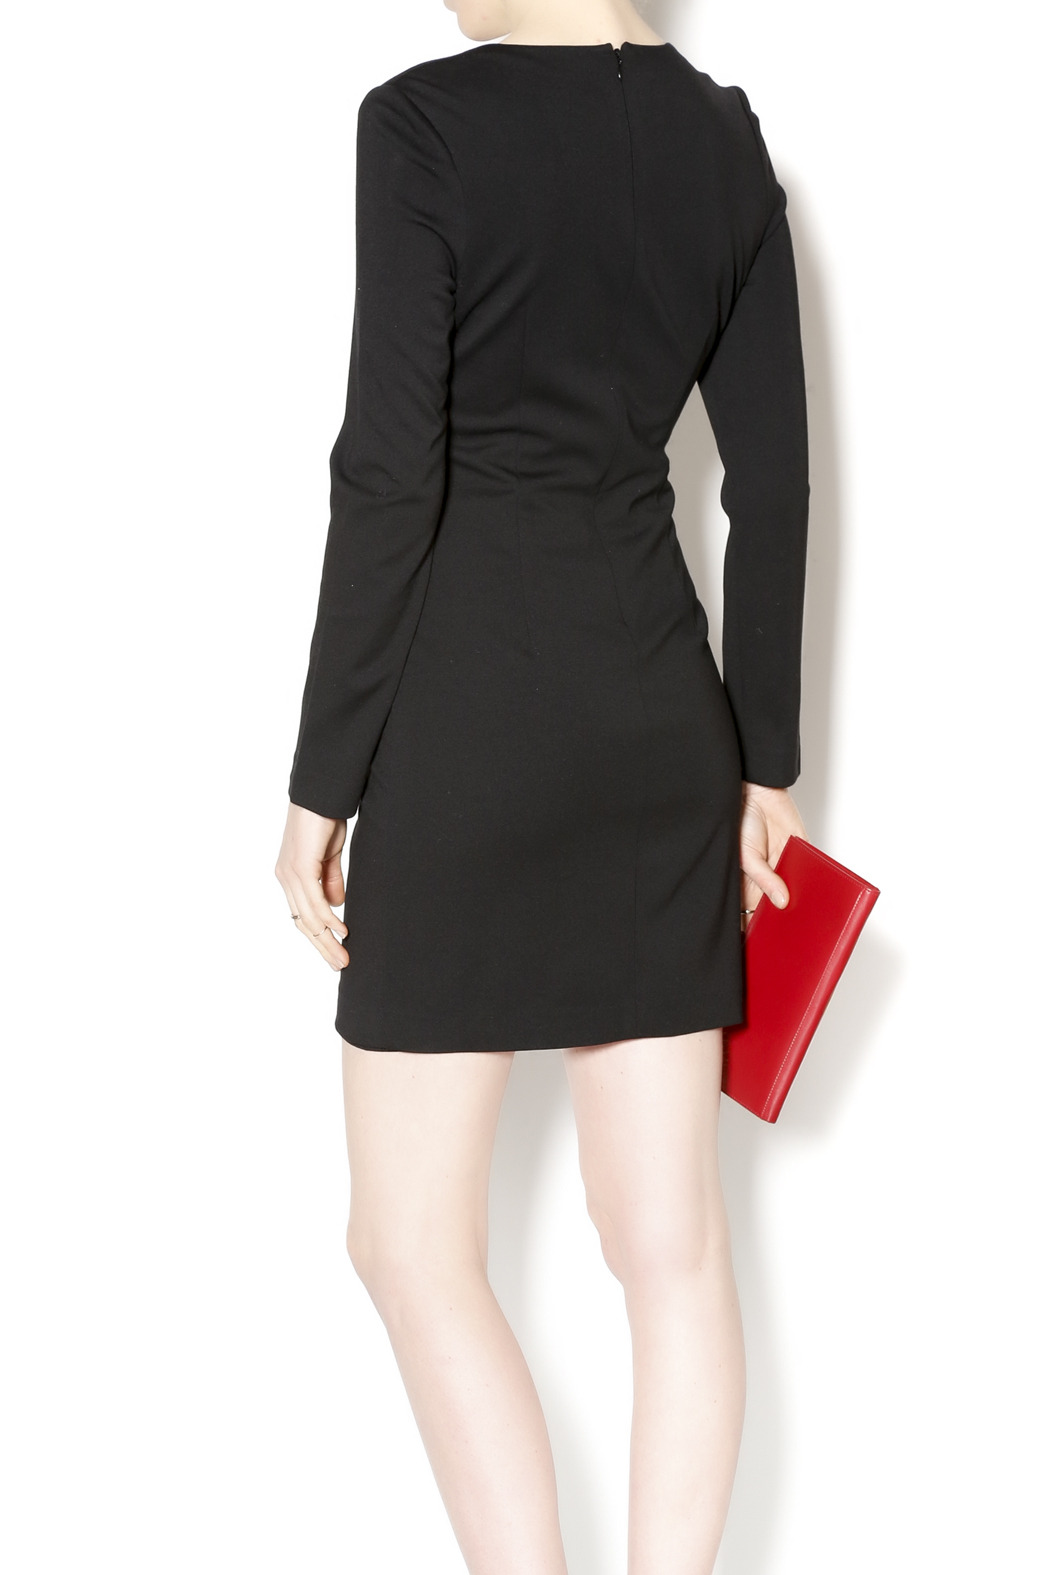 Black Label Black Scoop Hem Dress - Back Cropped Image